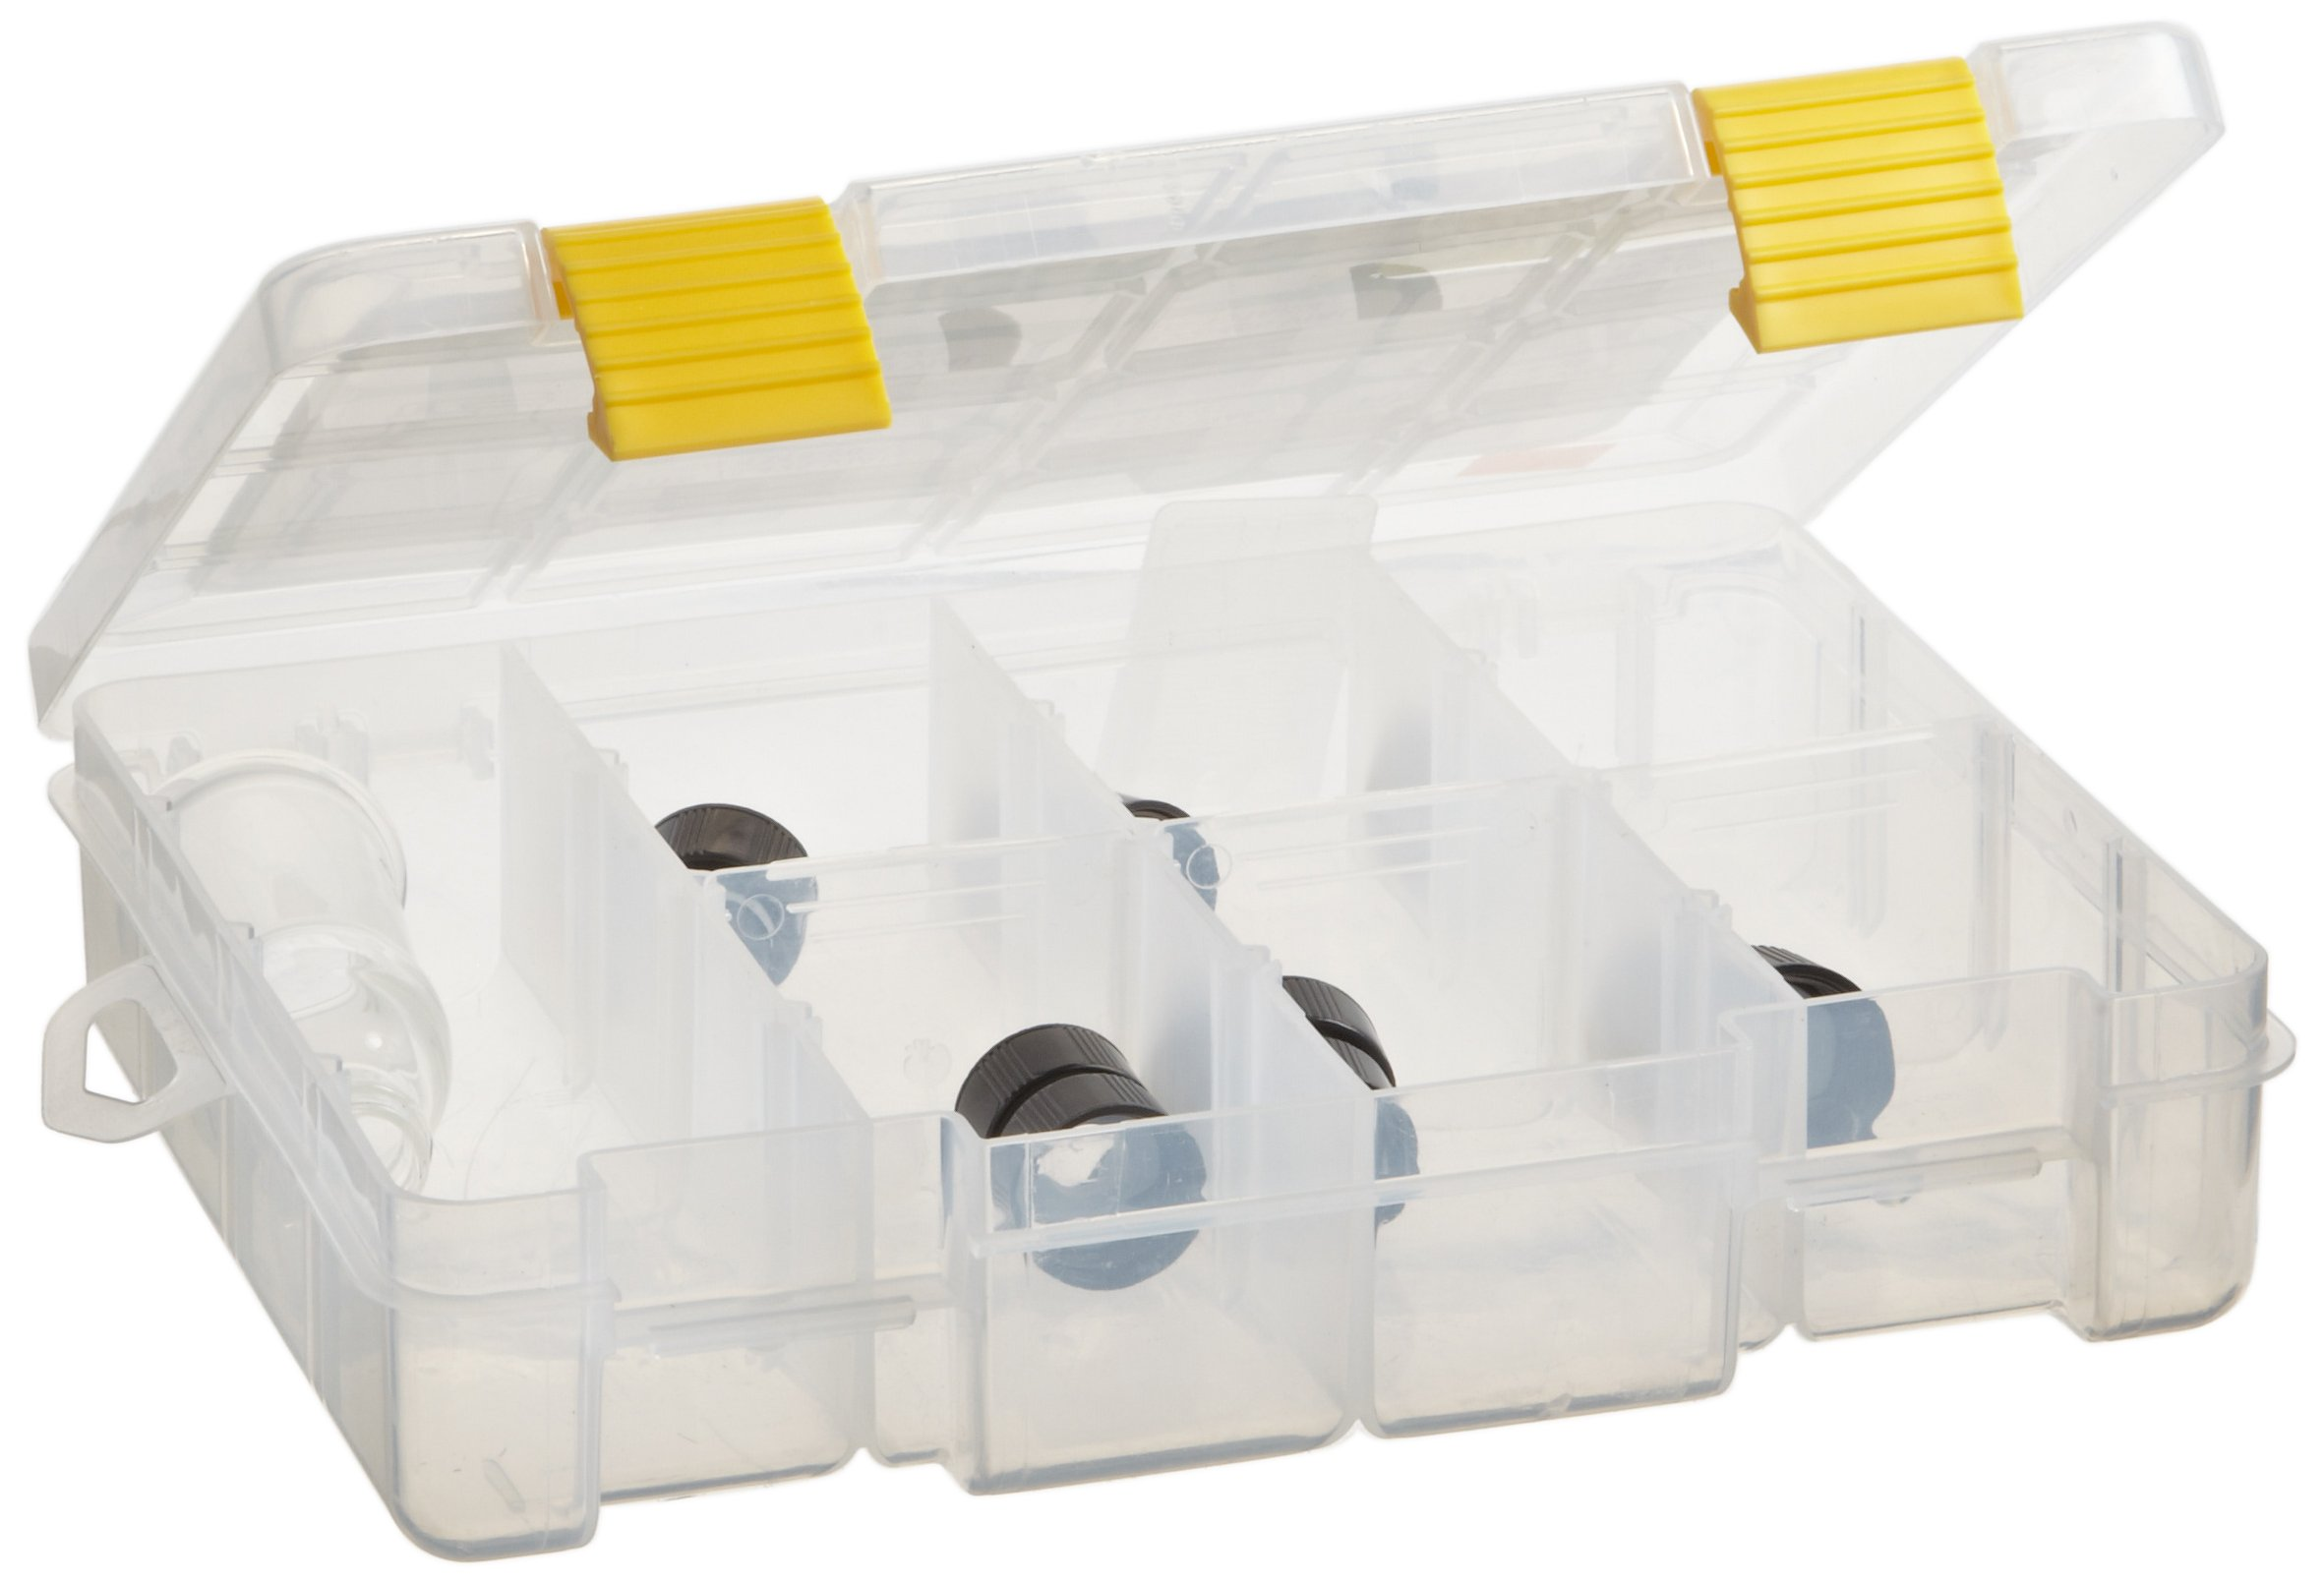 Chemglass CG-1318-42 6 Piece 29/42 Evaporator Vial Adapter Kit